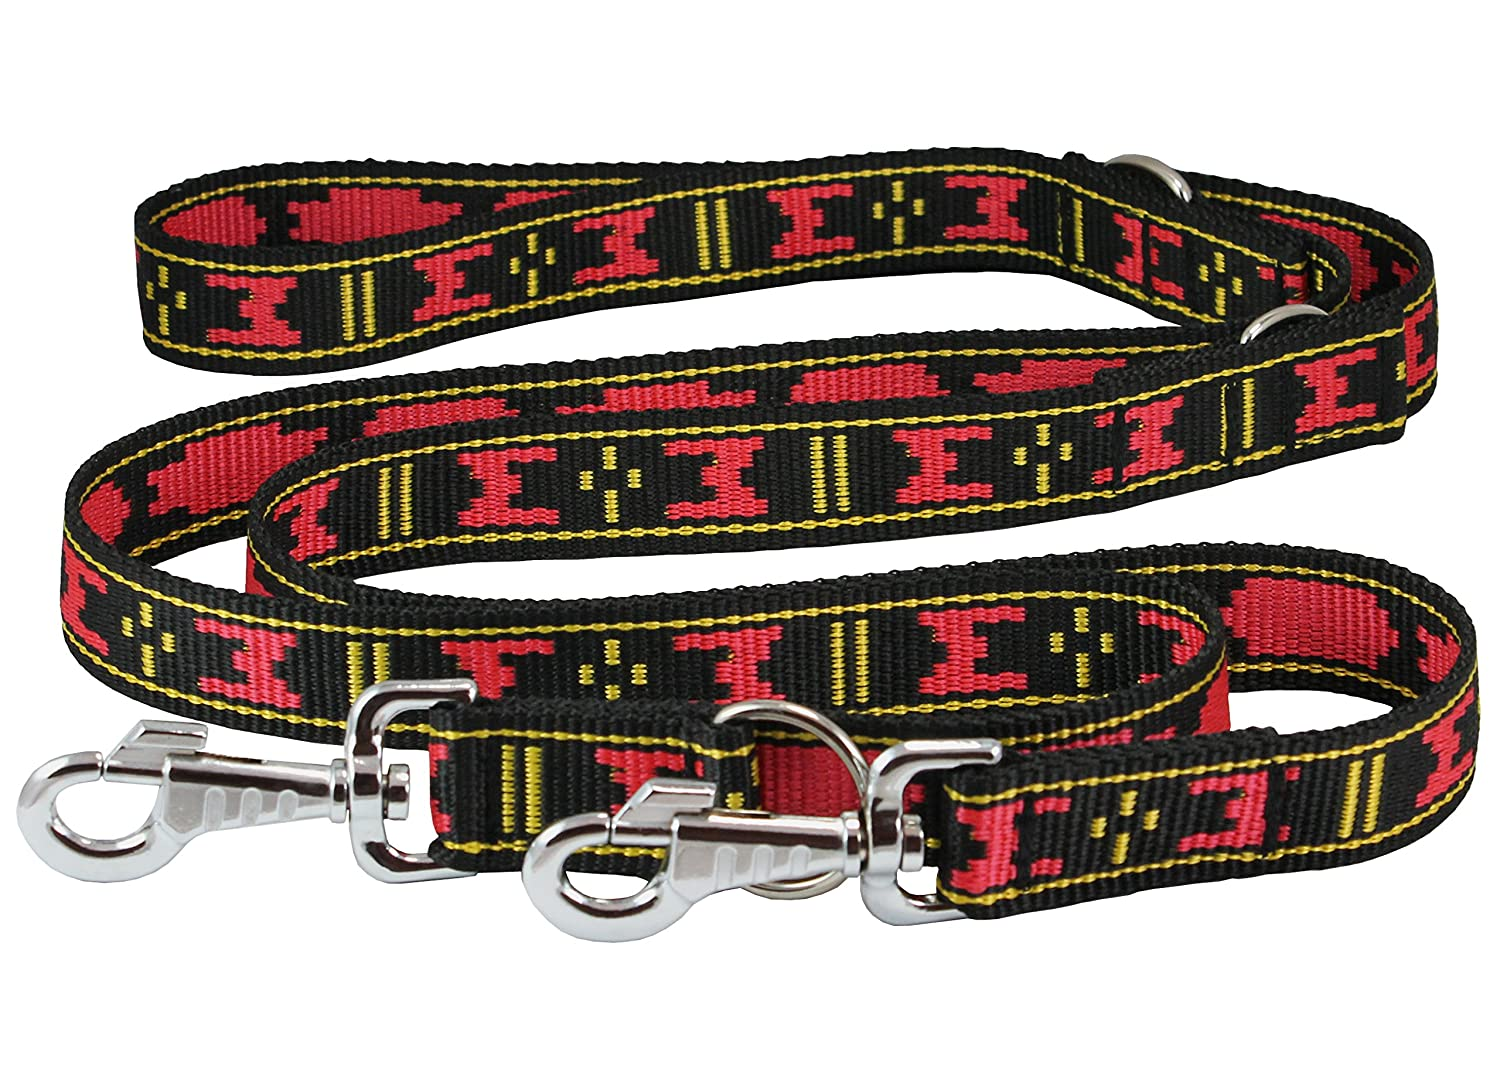 Thick Nylon Multifunctional Euro Dog Leash 1.25  Wide Adjustable 44 -70  Long Lead For Large XLarge Breeds